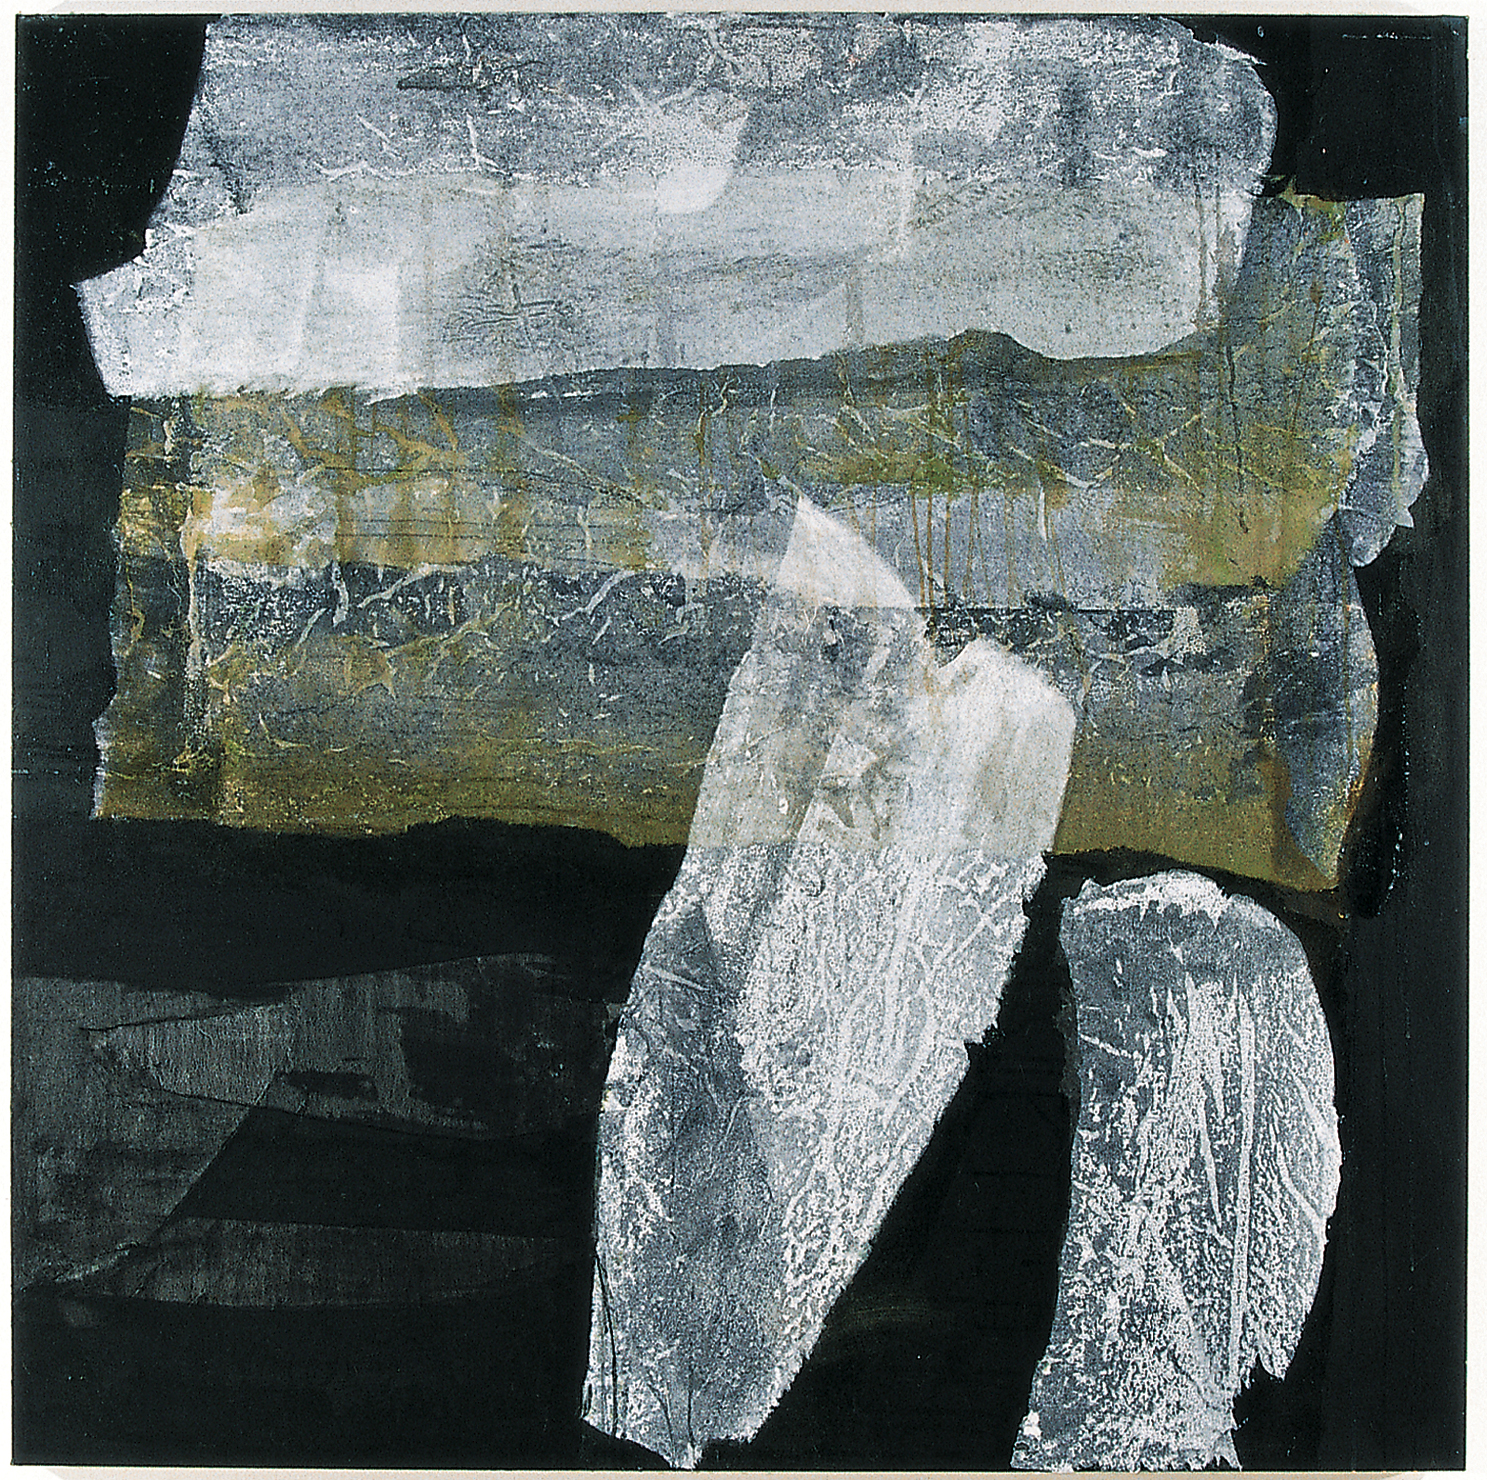 SoHyun Bae, Wrapped Shards #4, 2002, rice-paper and pure pigment on canvas, 60 x 60 inches